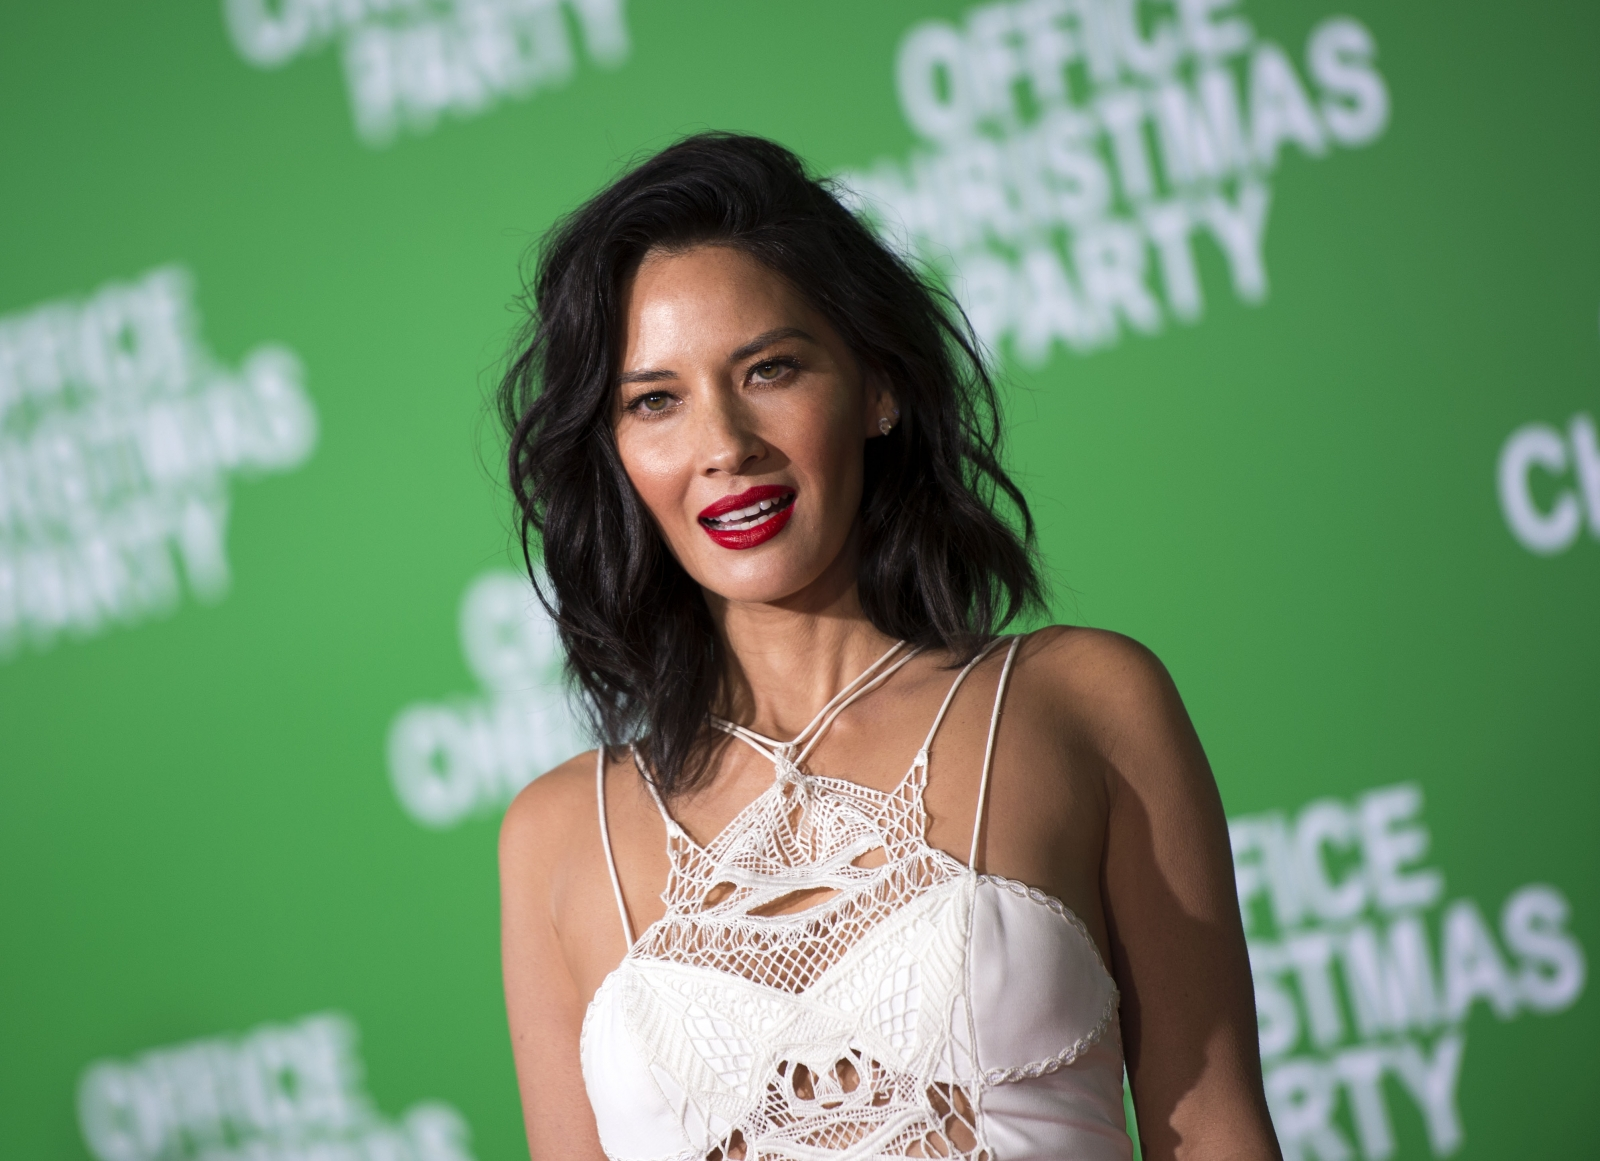 Too hot to handle: Aaron Rodgers' ex Olivia Munn flashes underwear in mini dress